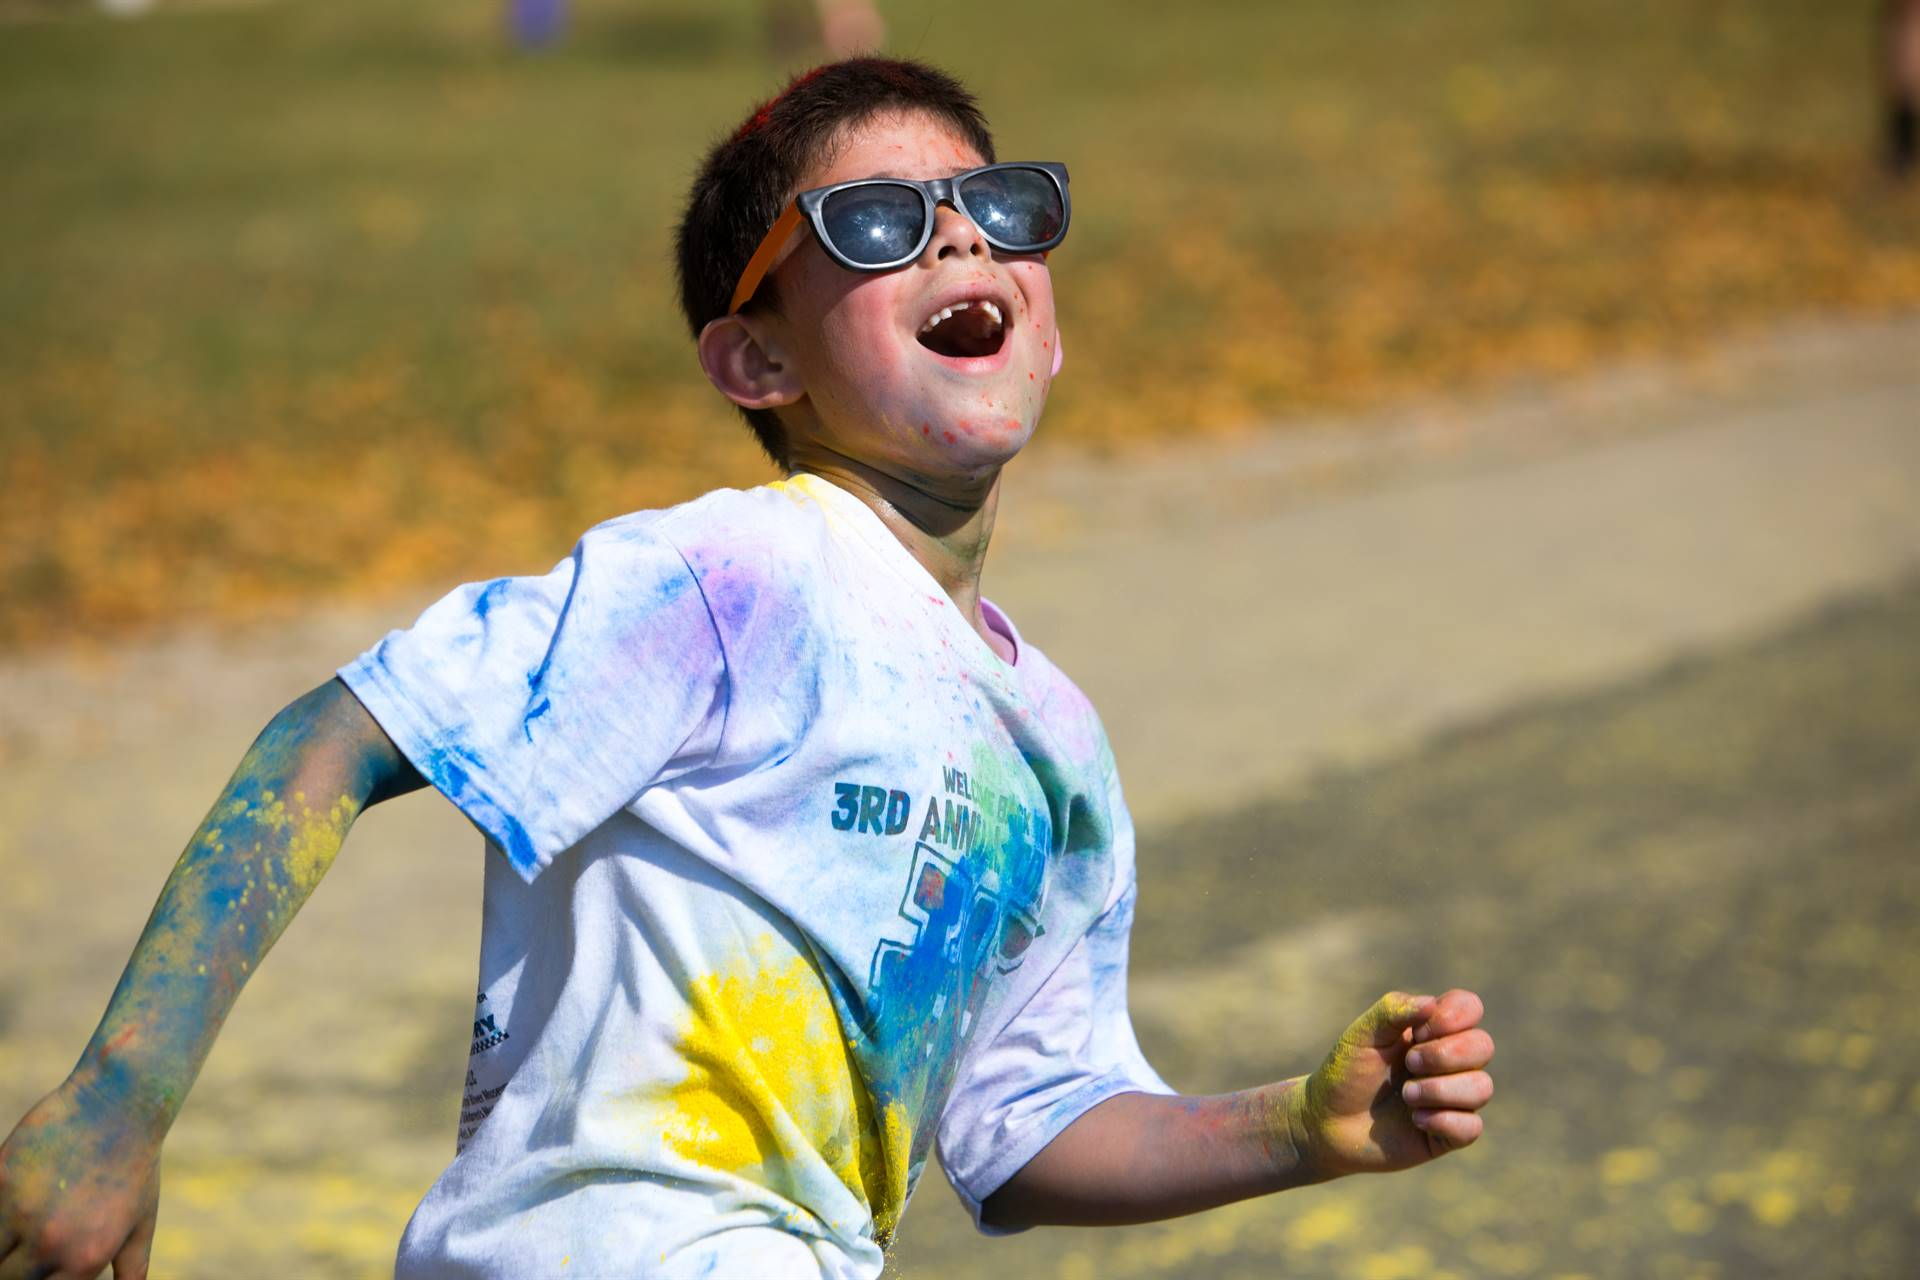 Silly boy at color run